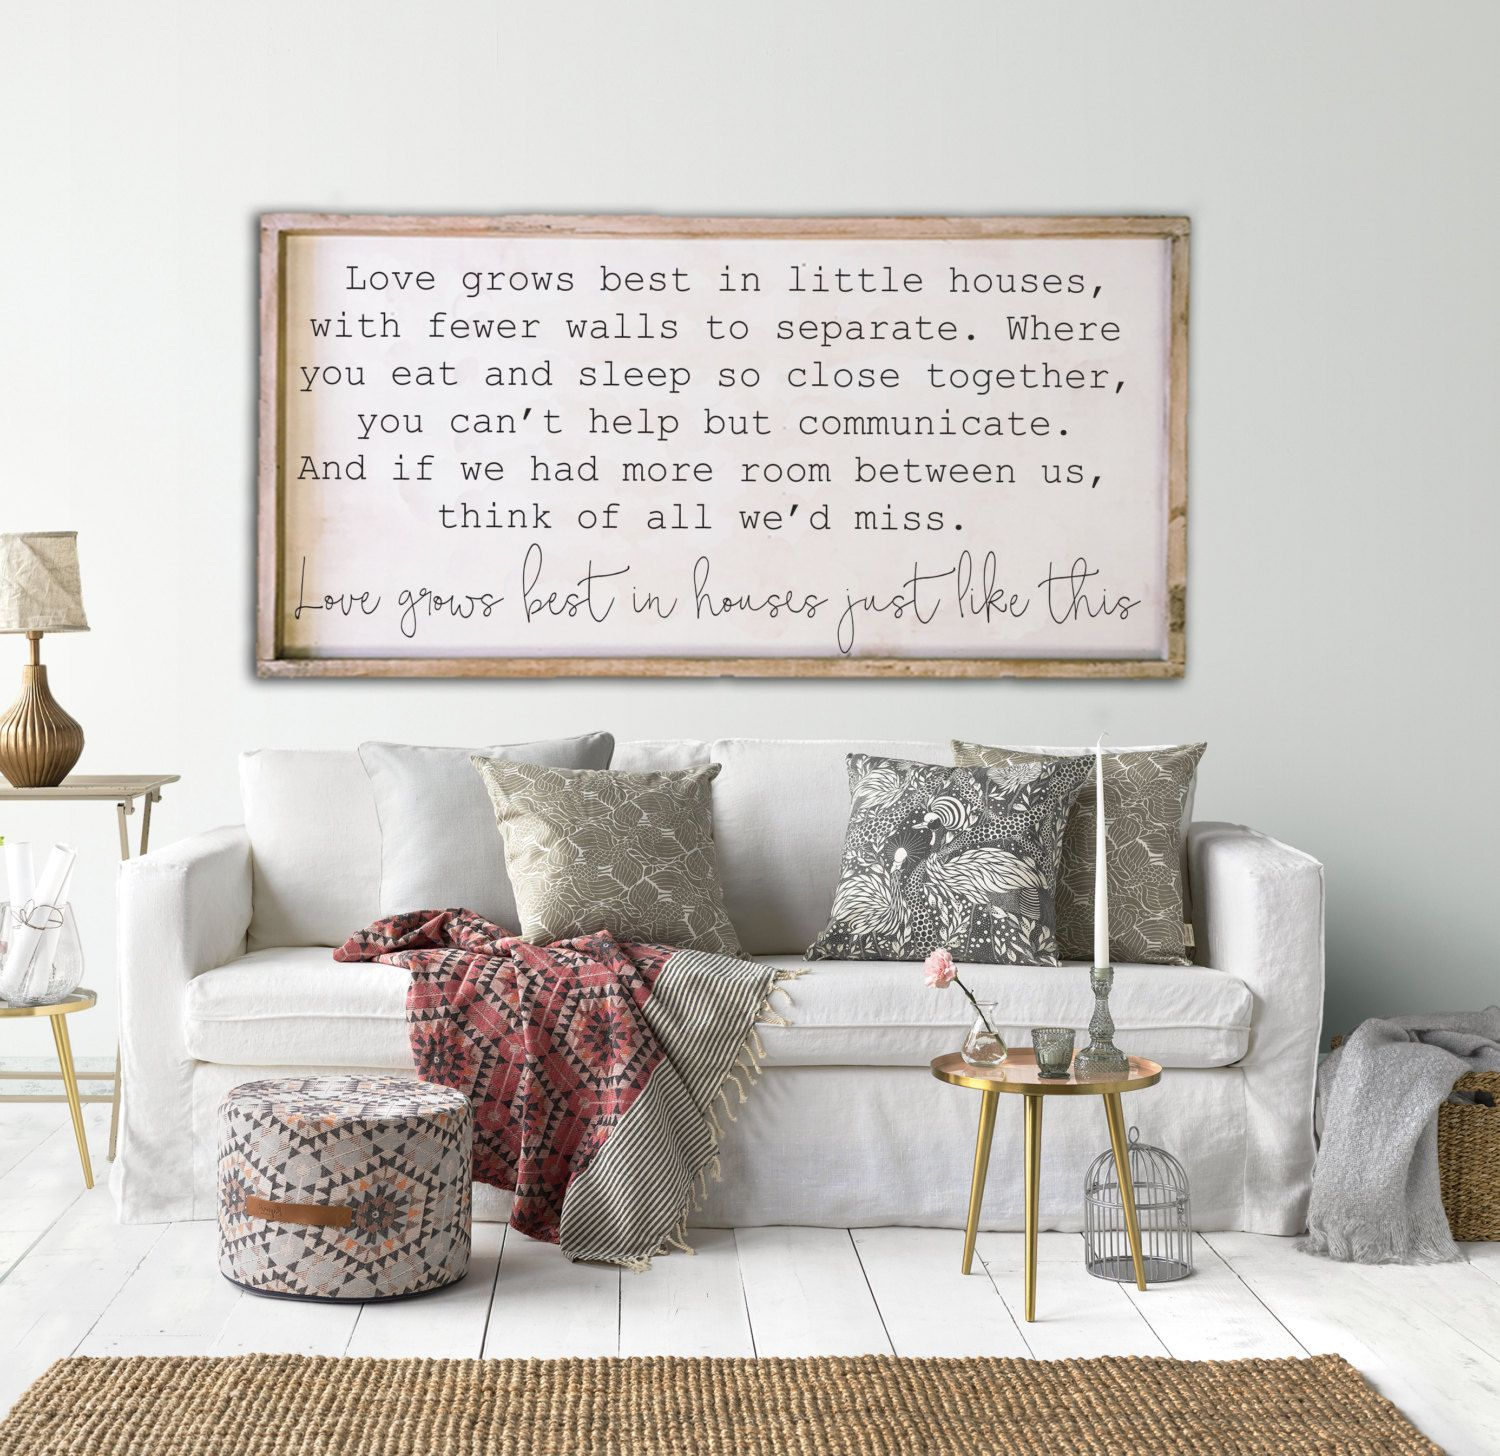 Love grows best in little houses, 24x48, Framed wood sign | RVing ...